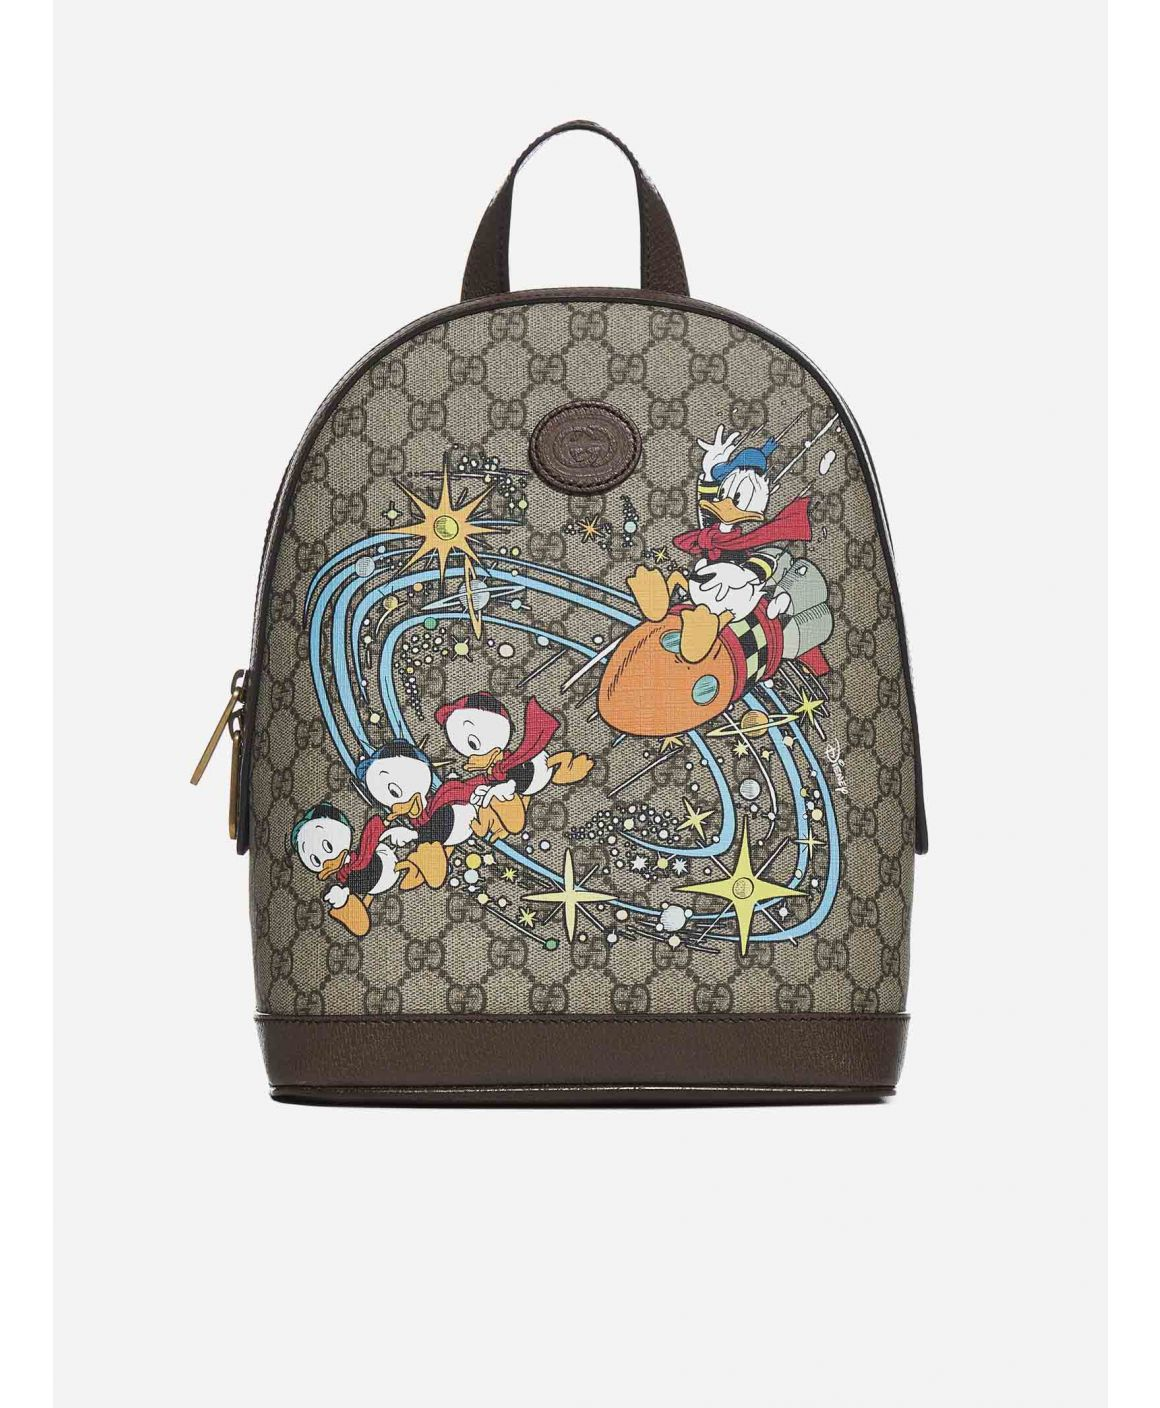 Donald Duck Disney x Gucci backpack